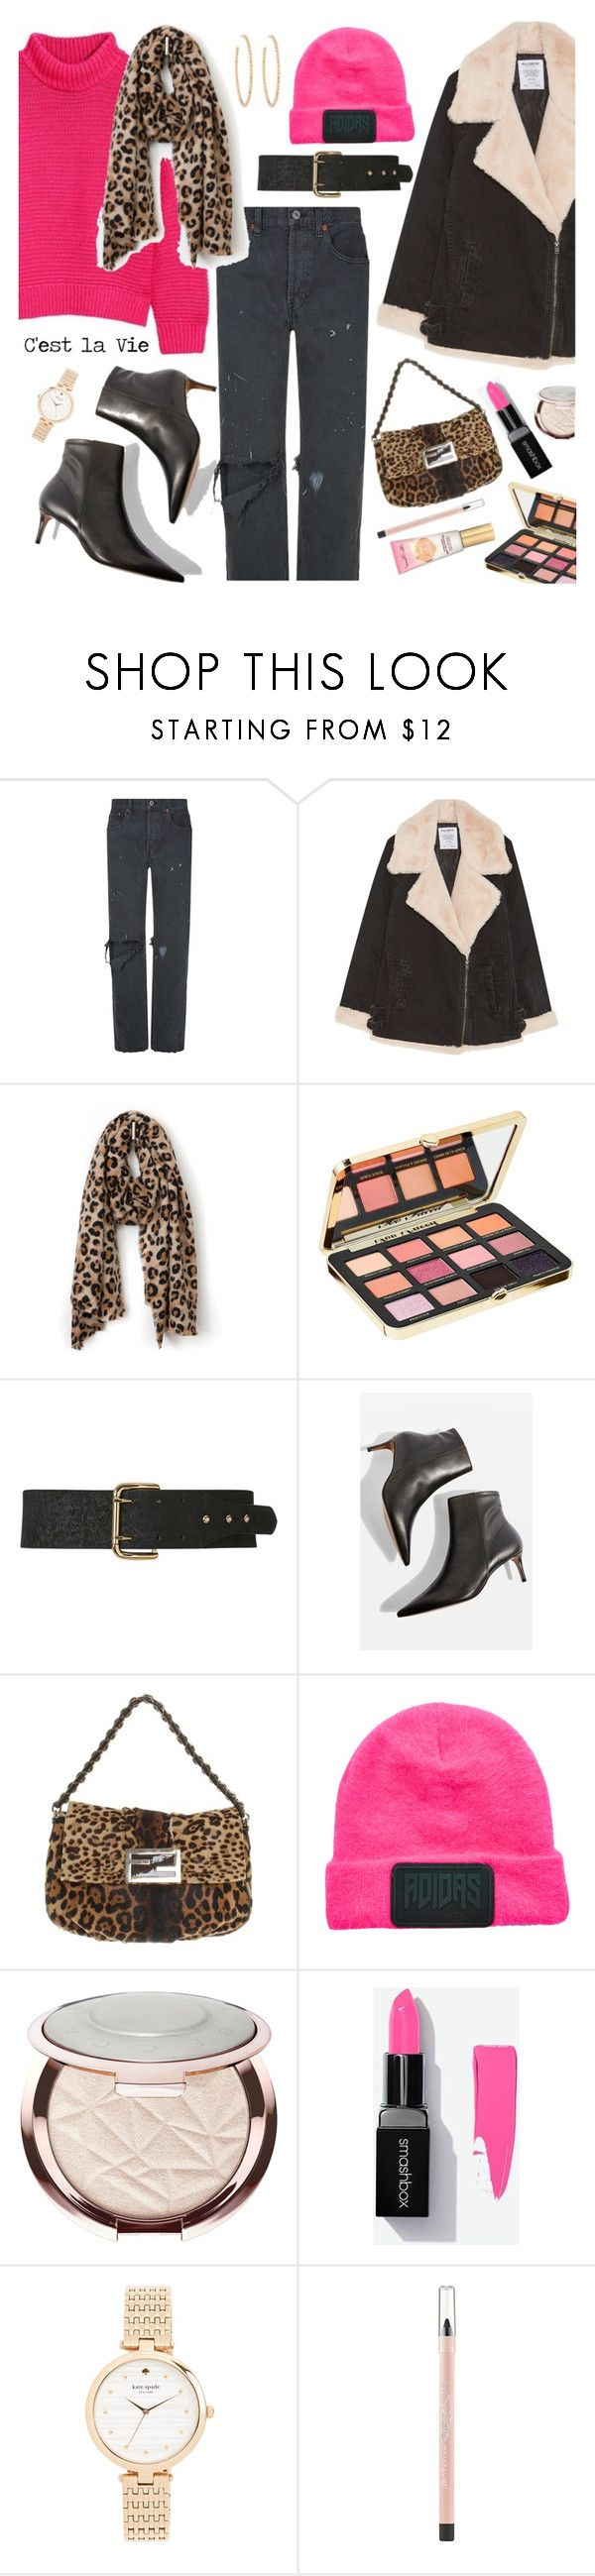 """""""C'est la Vie💋 22-1-2018"""" by anamarija00 ❤ liked on Polyvore featuring RE/DONE, Too Faced Cosmetics, B-Low the Belt, Topshop, Fendi, adidas Originals, Sephora Collection, Kate Spade, Maybelline and Berry"""